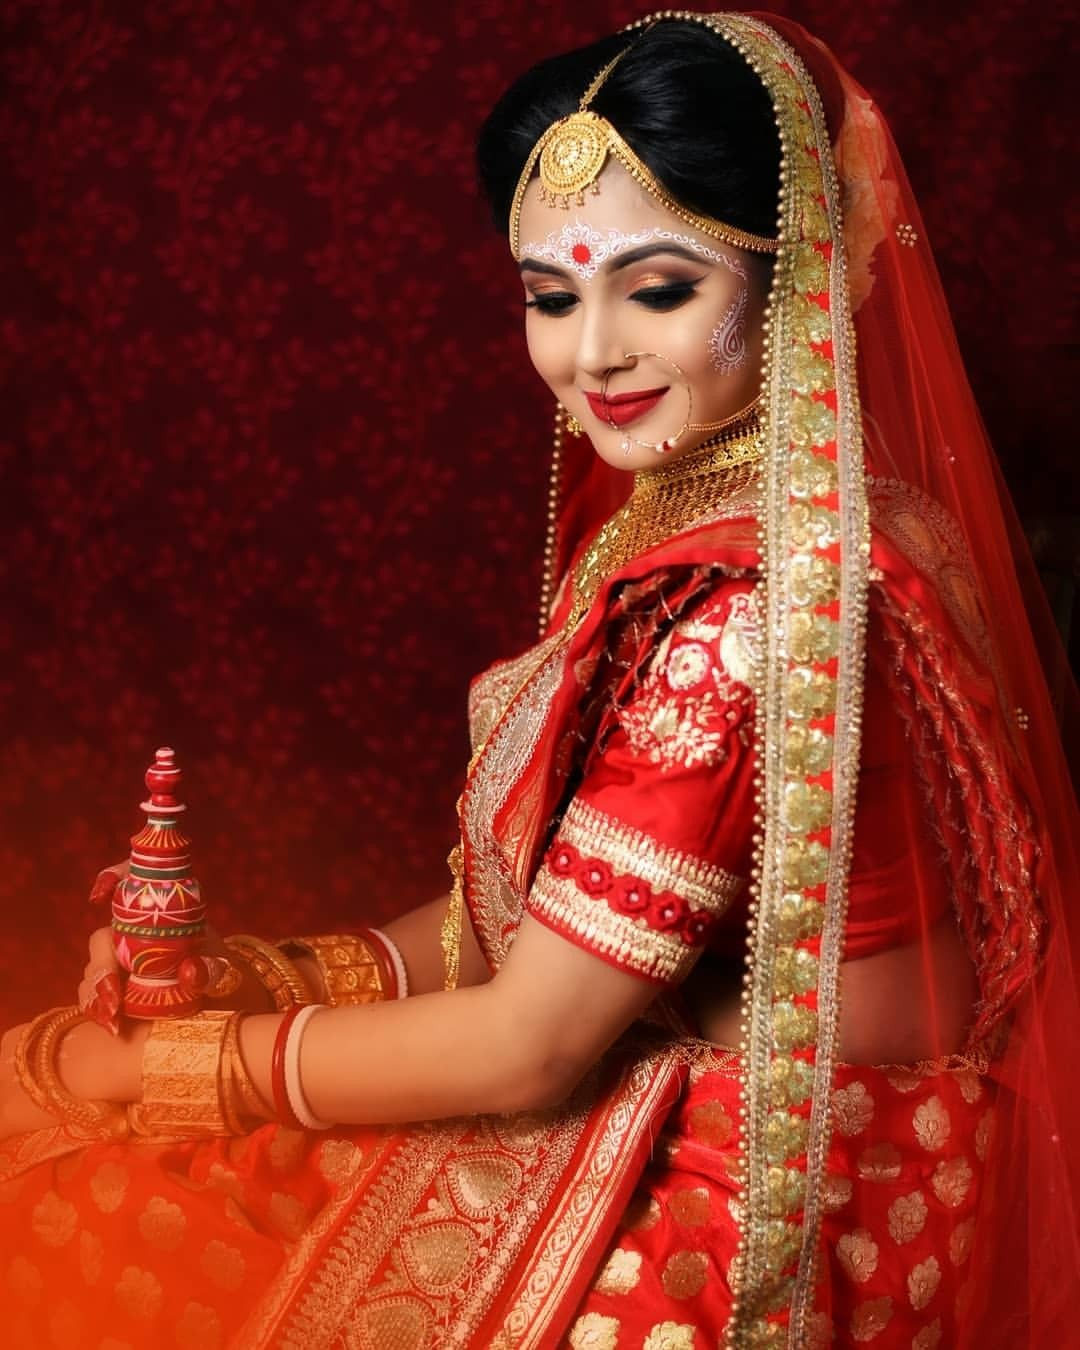 Female Bengali Wedding Photography Poses Wedding Photography Poses